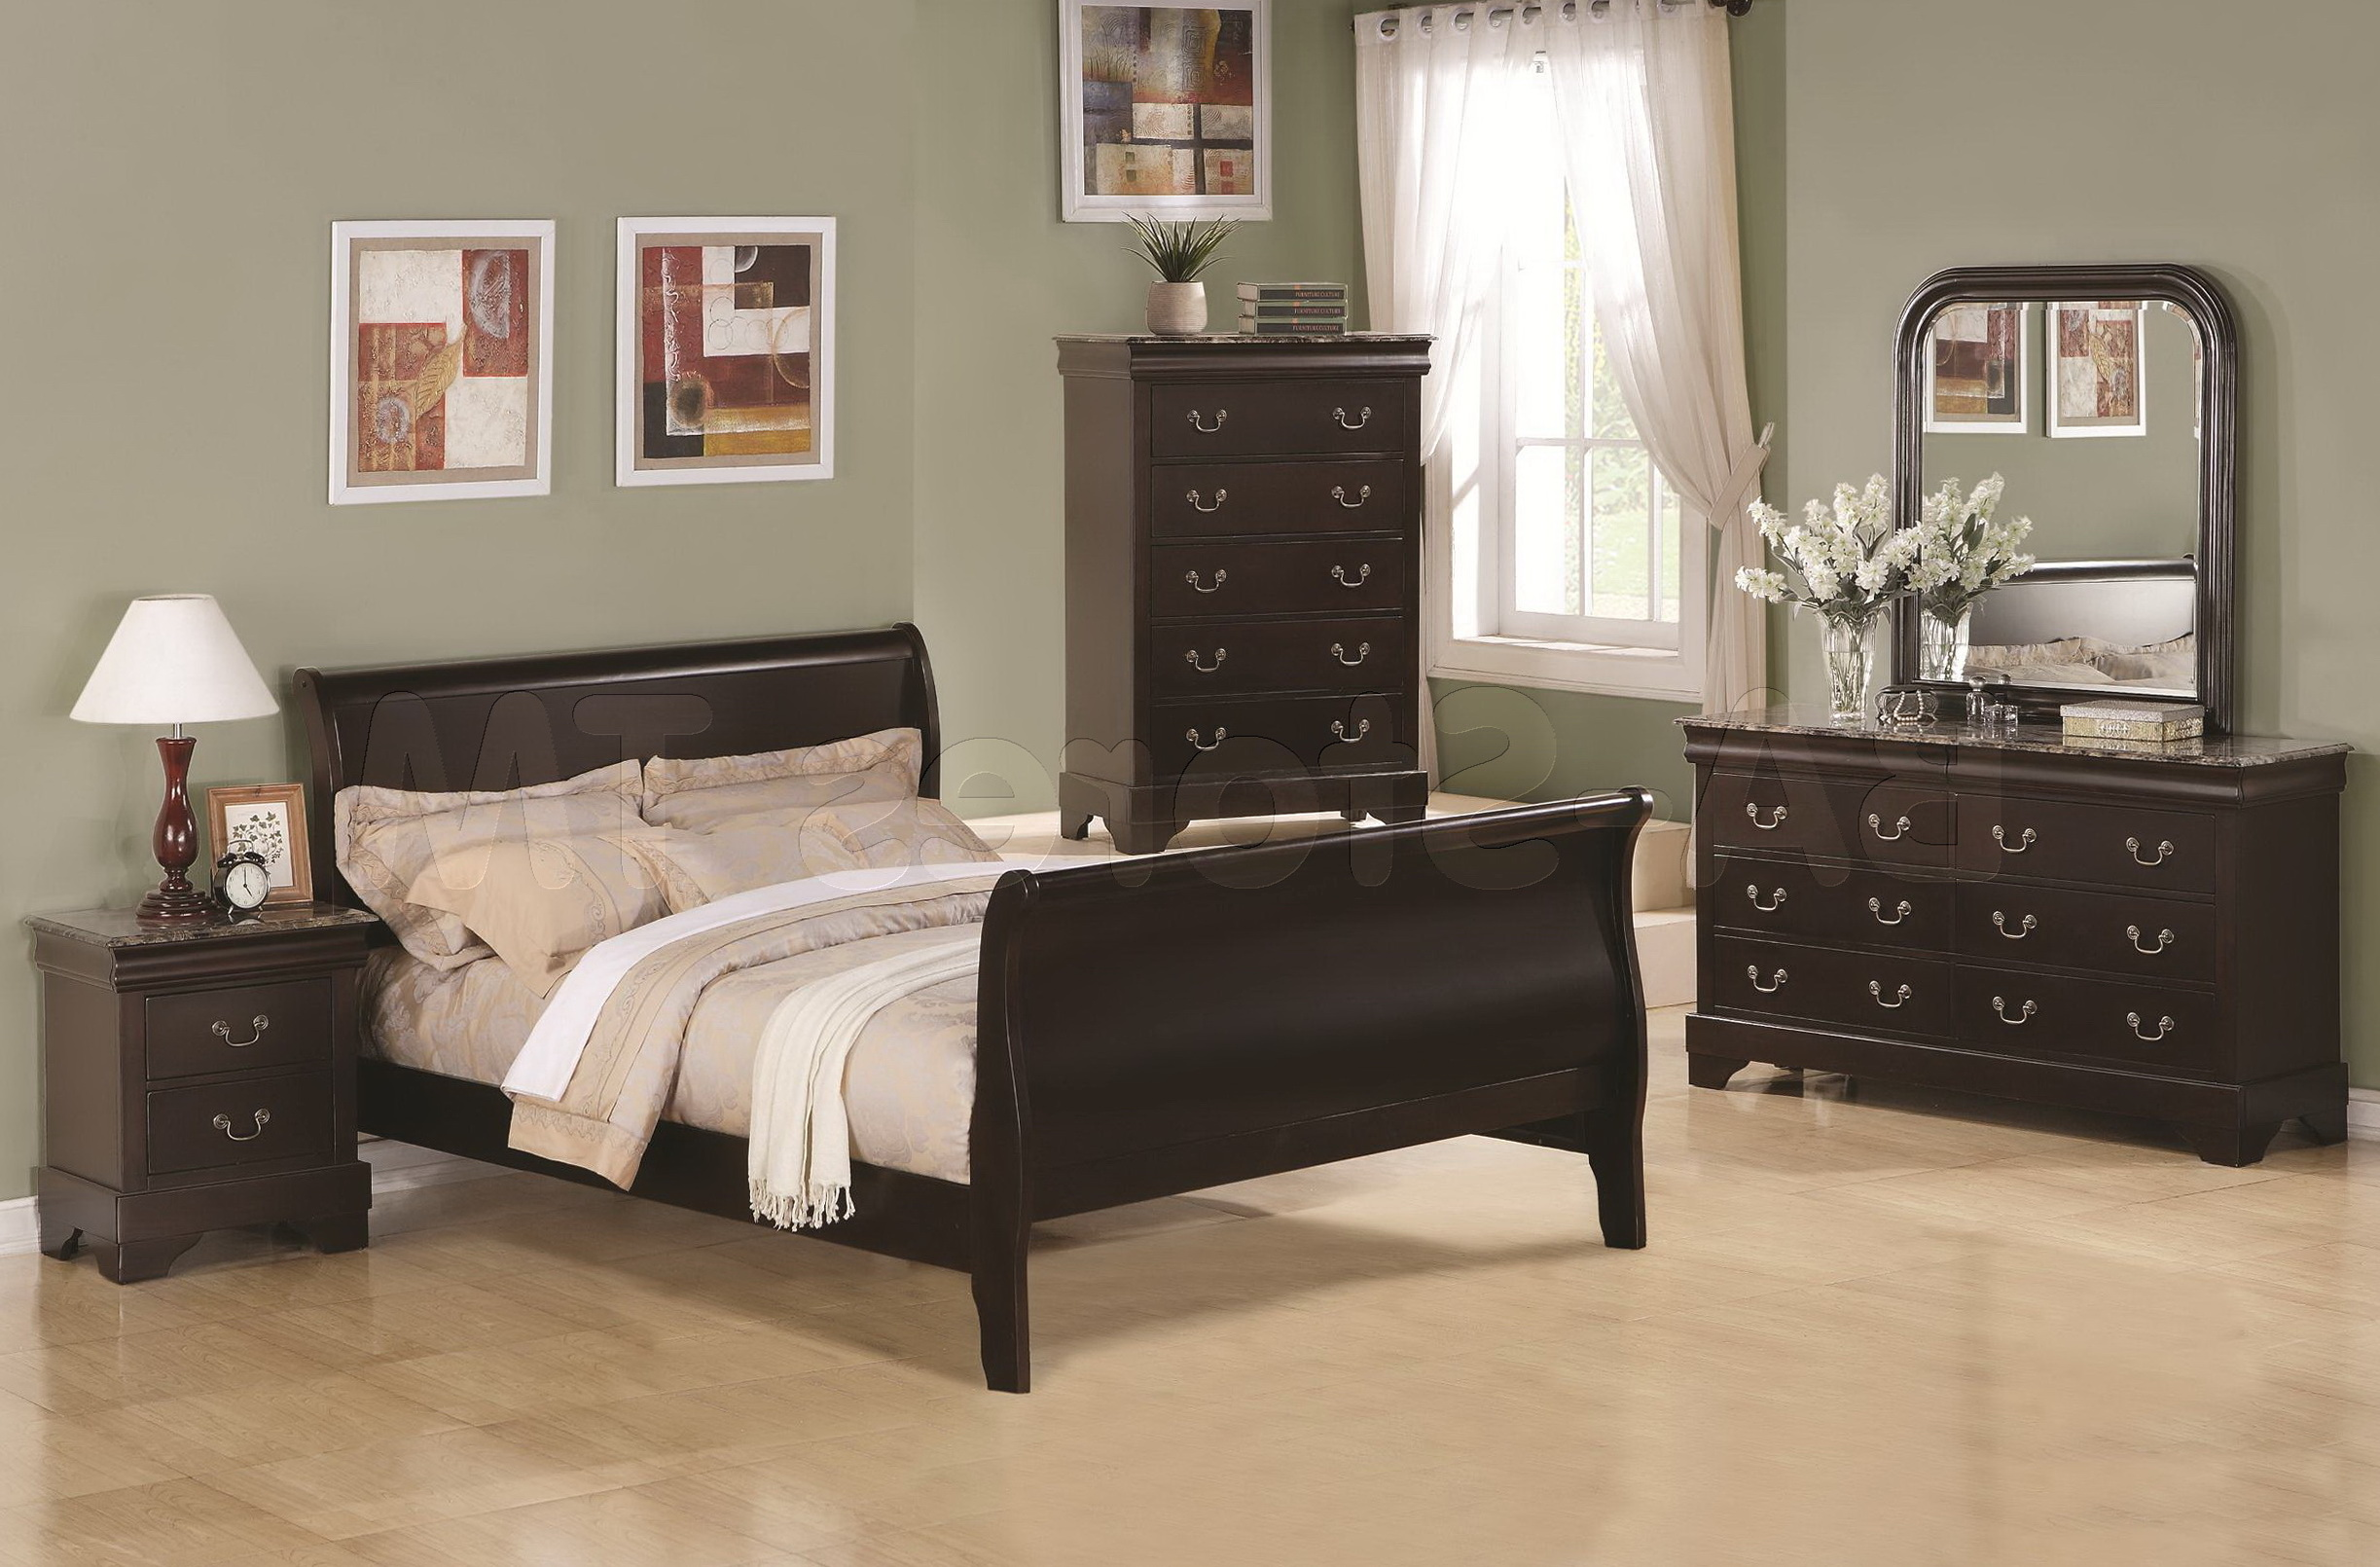 Hayworth Mirrored Bedroom Furniture Collection